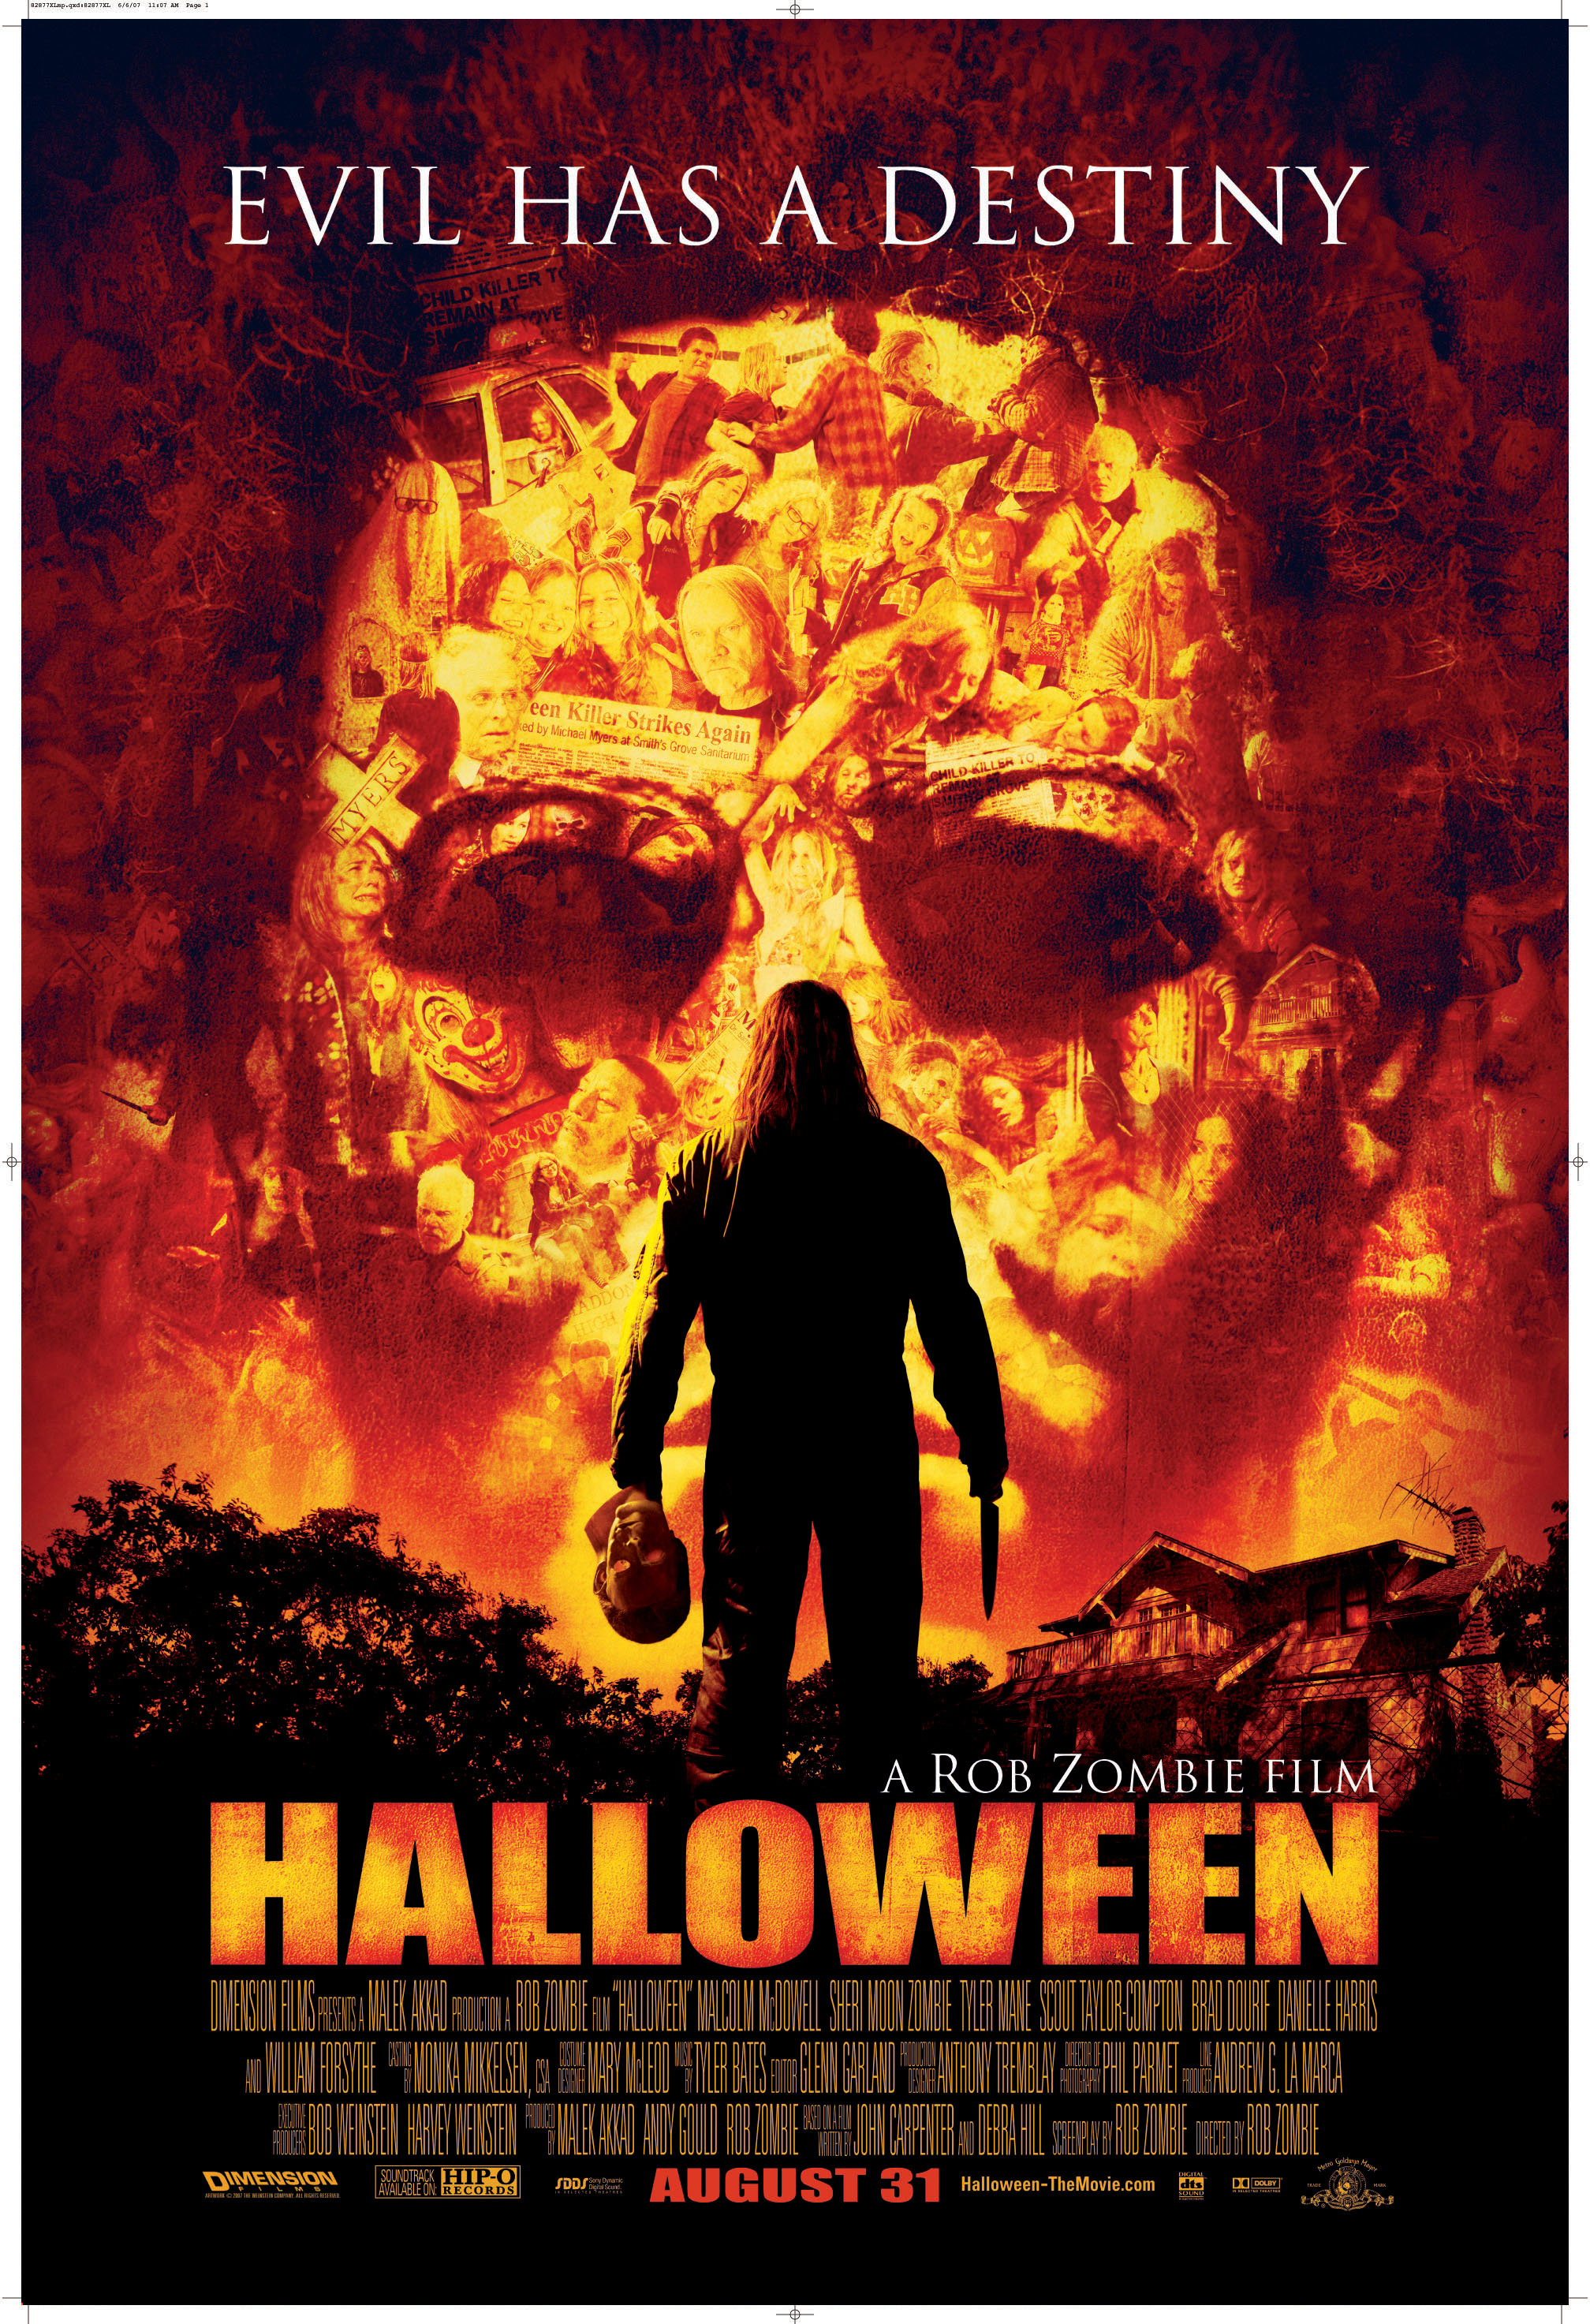 Rob Zombie's Halloween review - Slickster Magazine